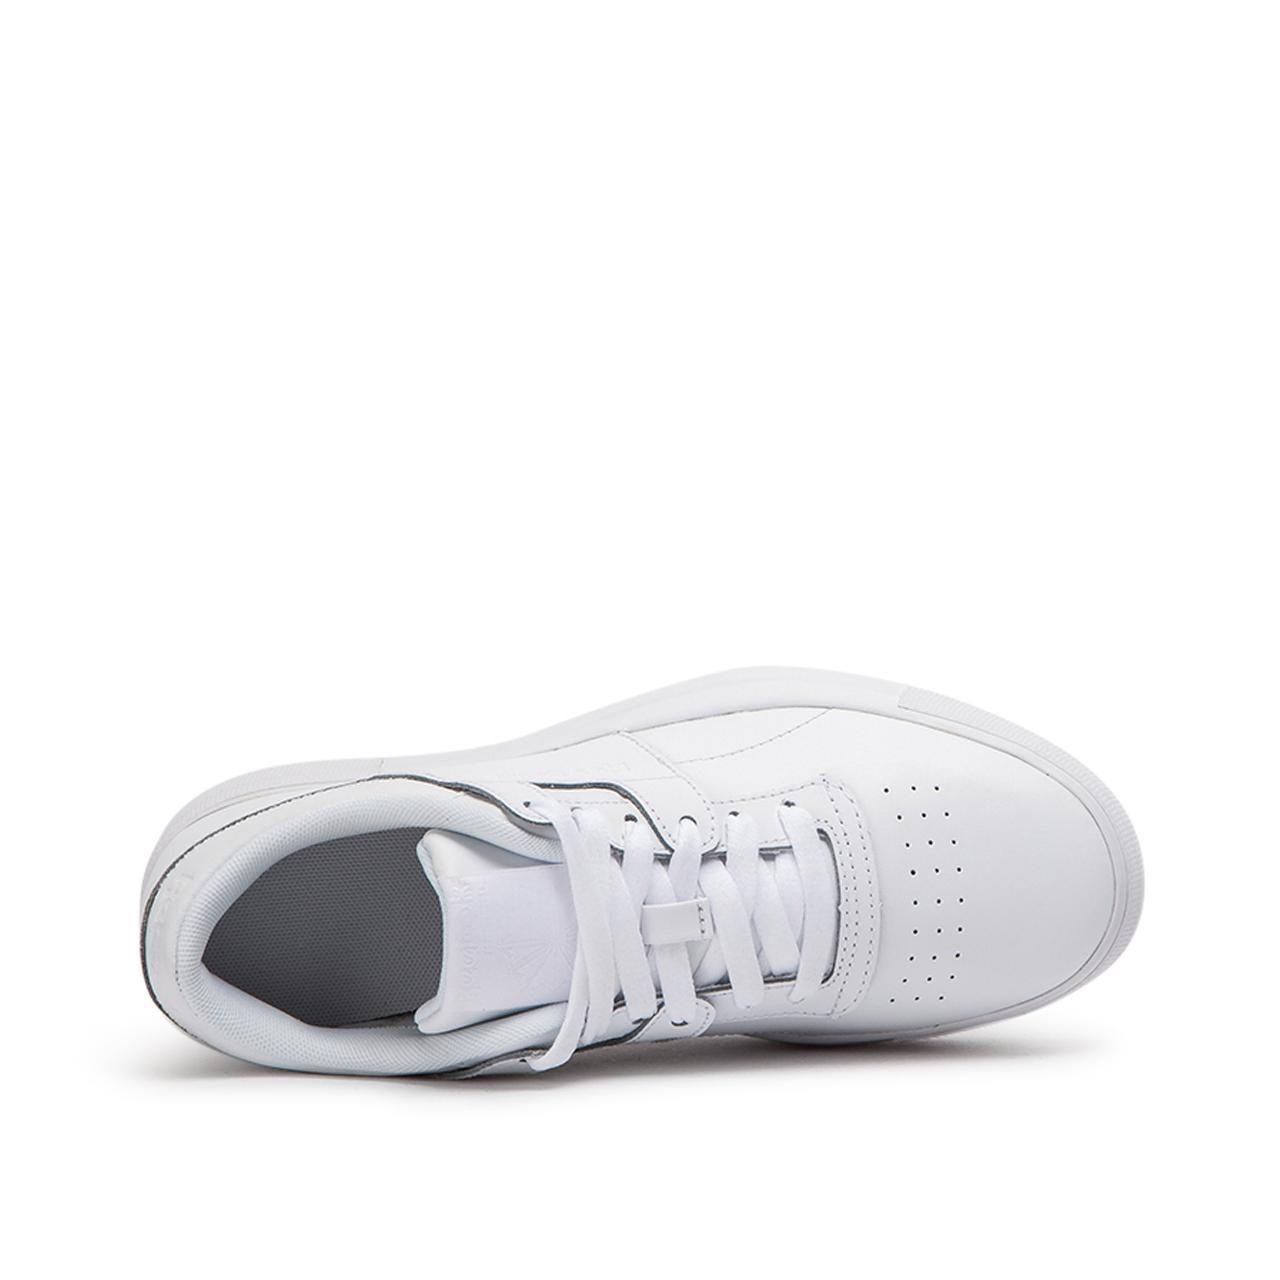 46a0375b5d9f7 Reebok - White Wmns Workout Lo Fvs for Men - Lyst. View fullscreen